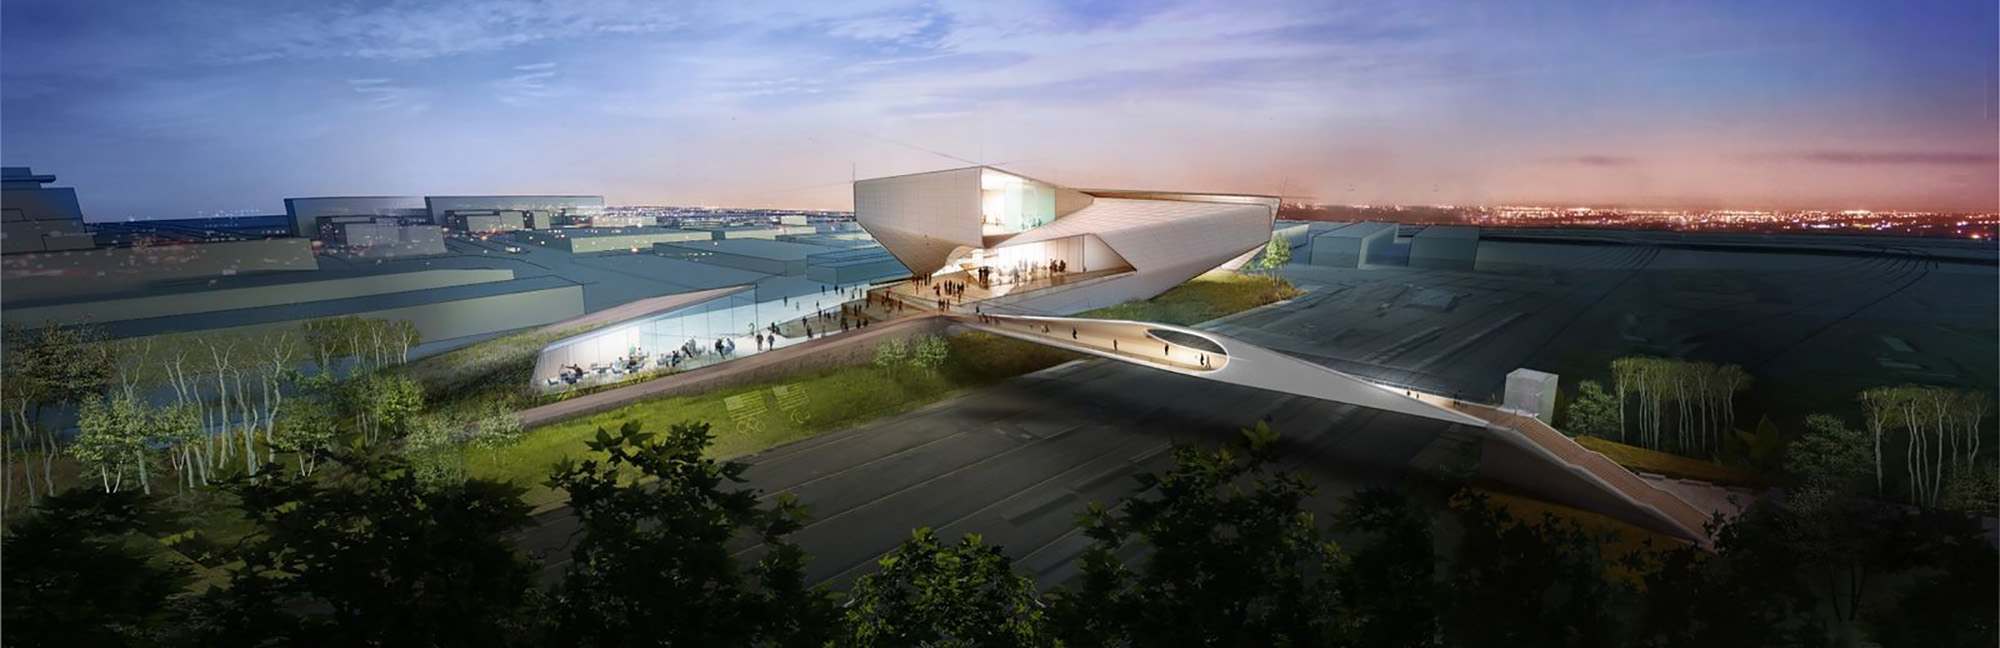 mm_United States Olympic Museum design by Diller Scofidio + Renfro _01